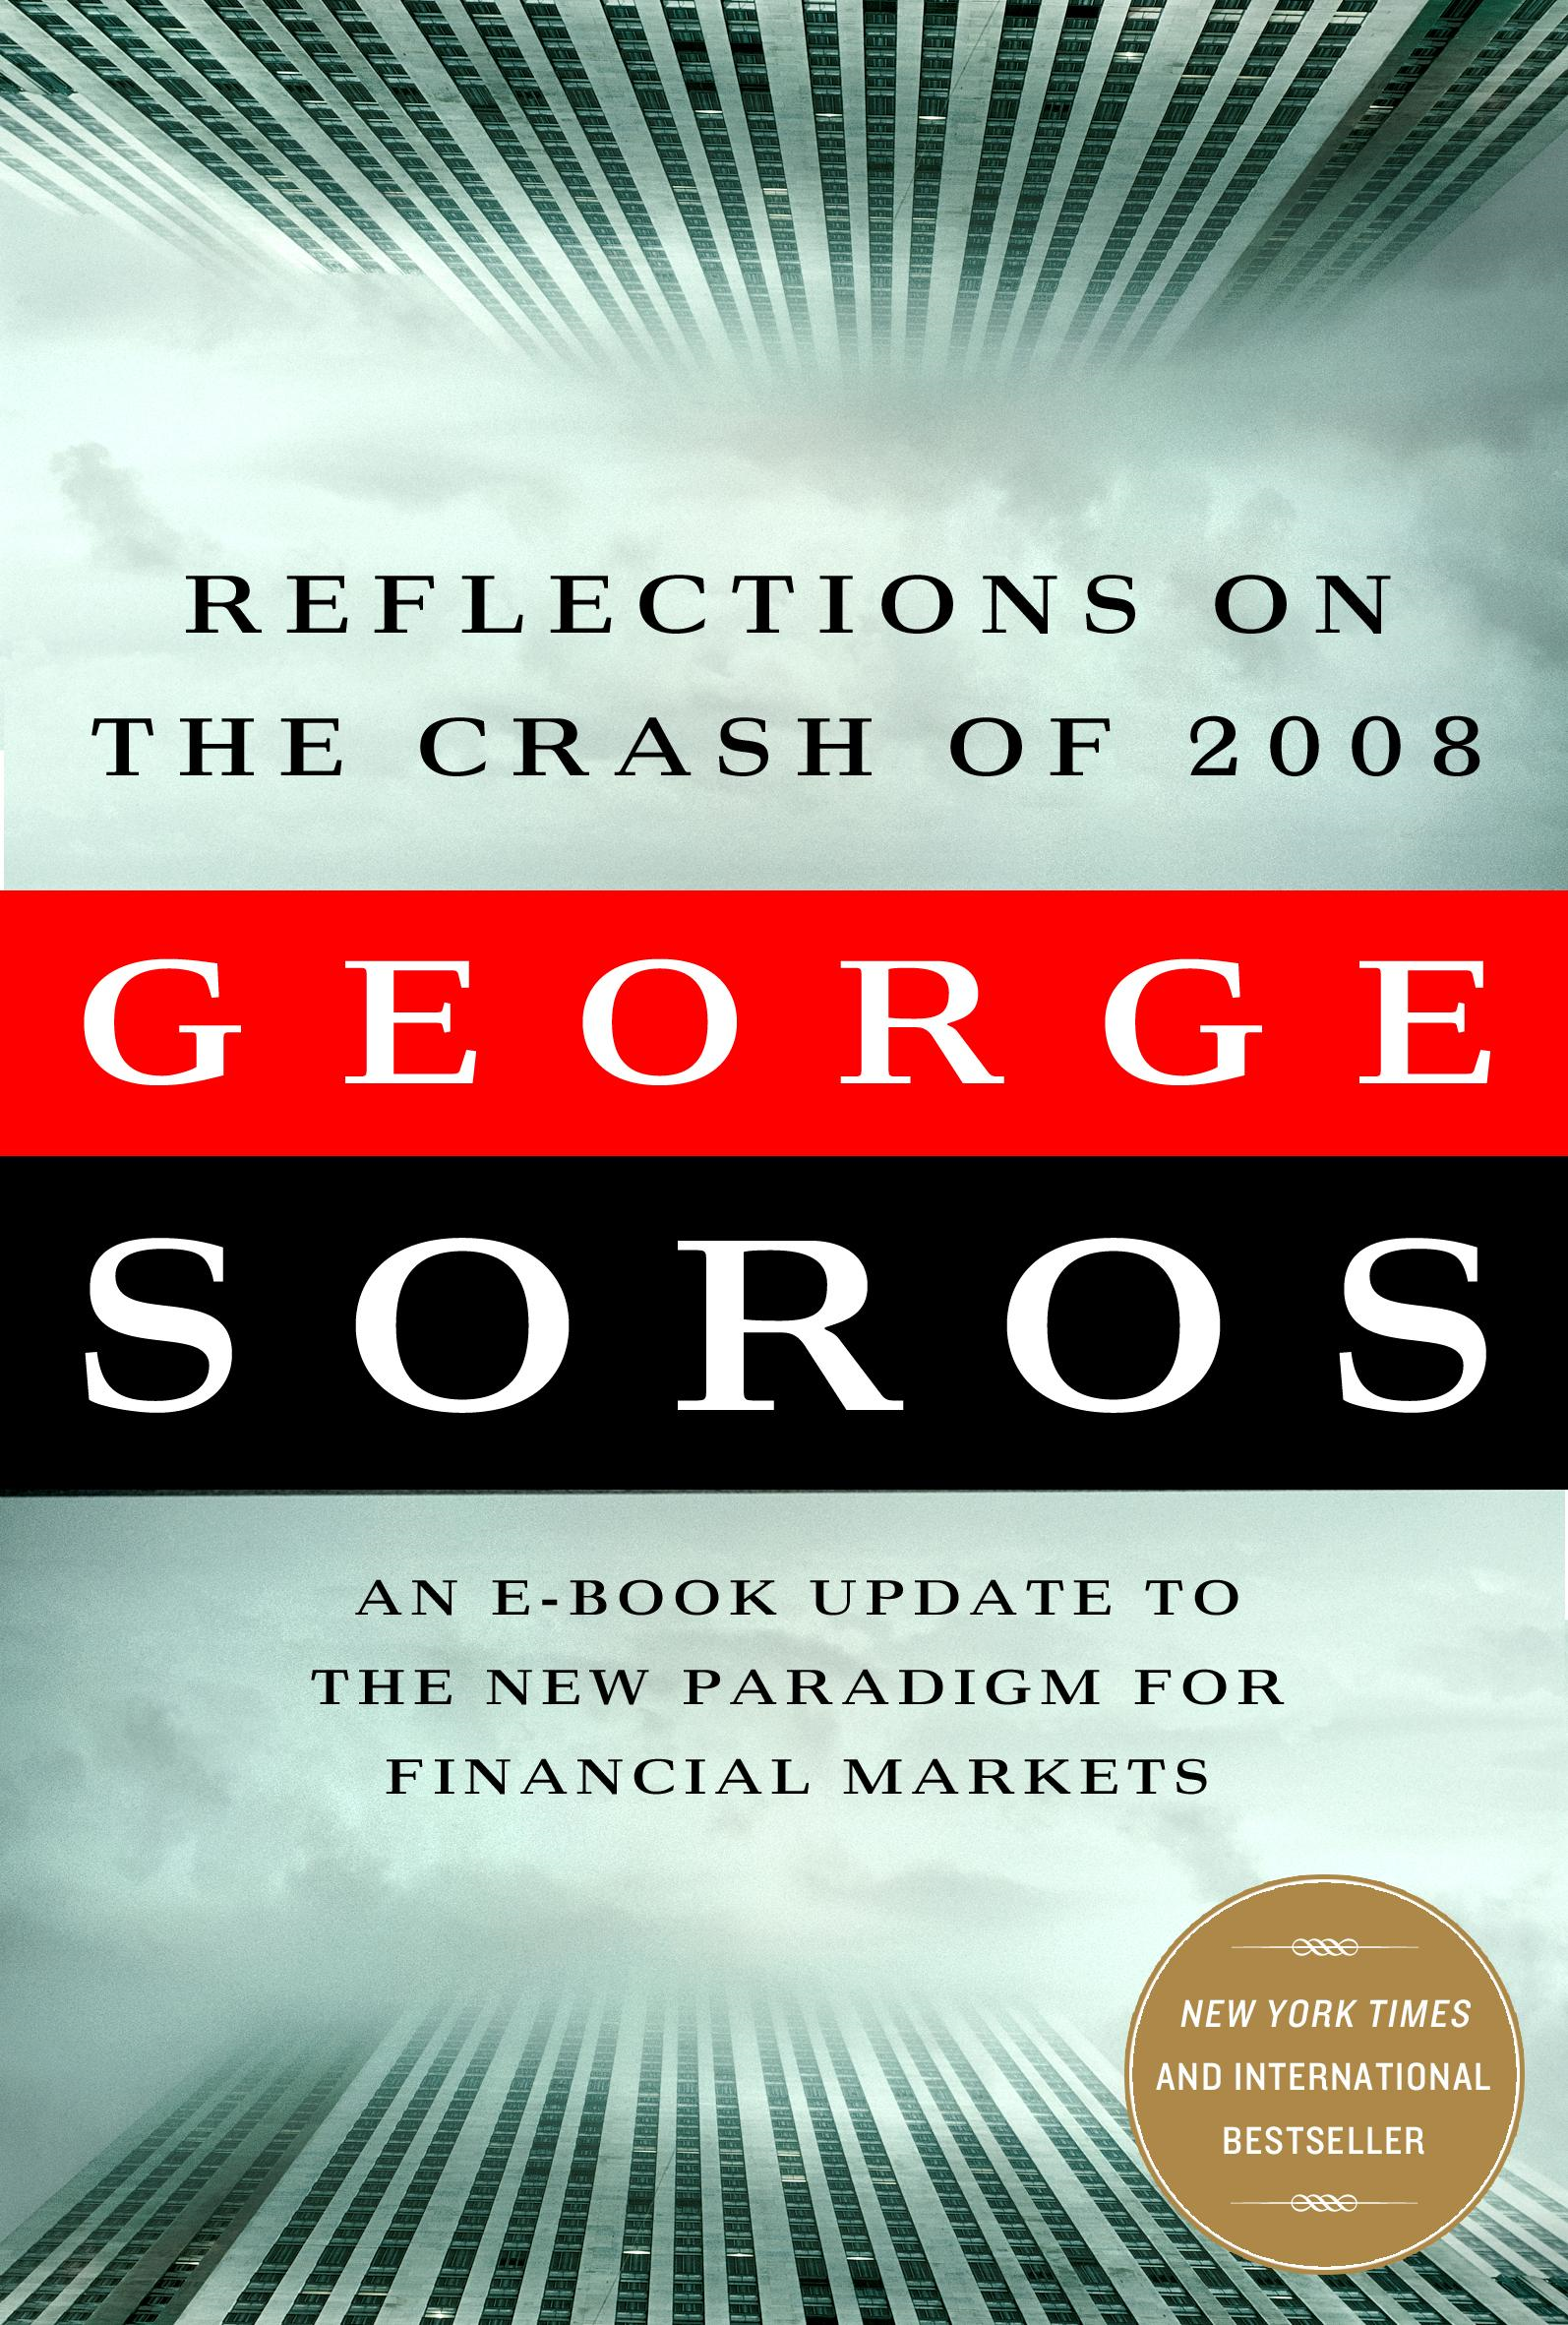 George Soros - Reflections on the Crash of 2008: An E-book Update to The New Paradigm for Financial Markets